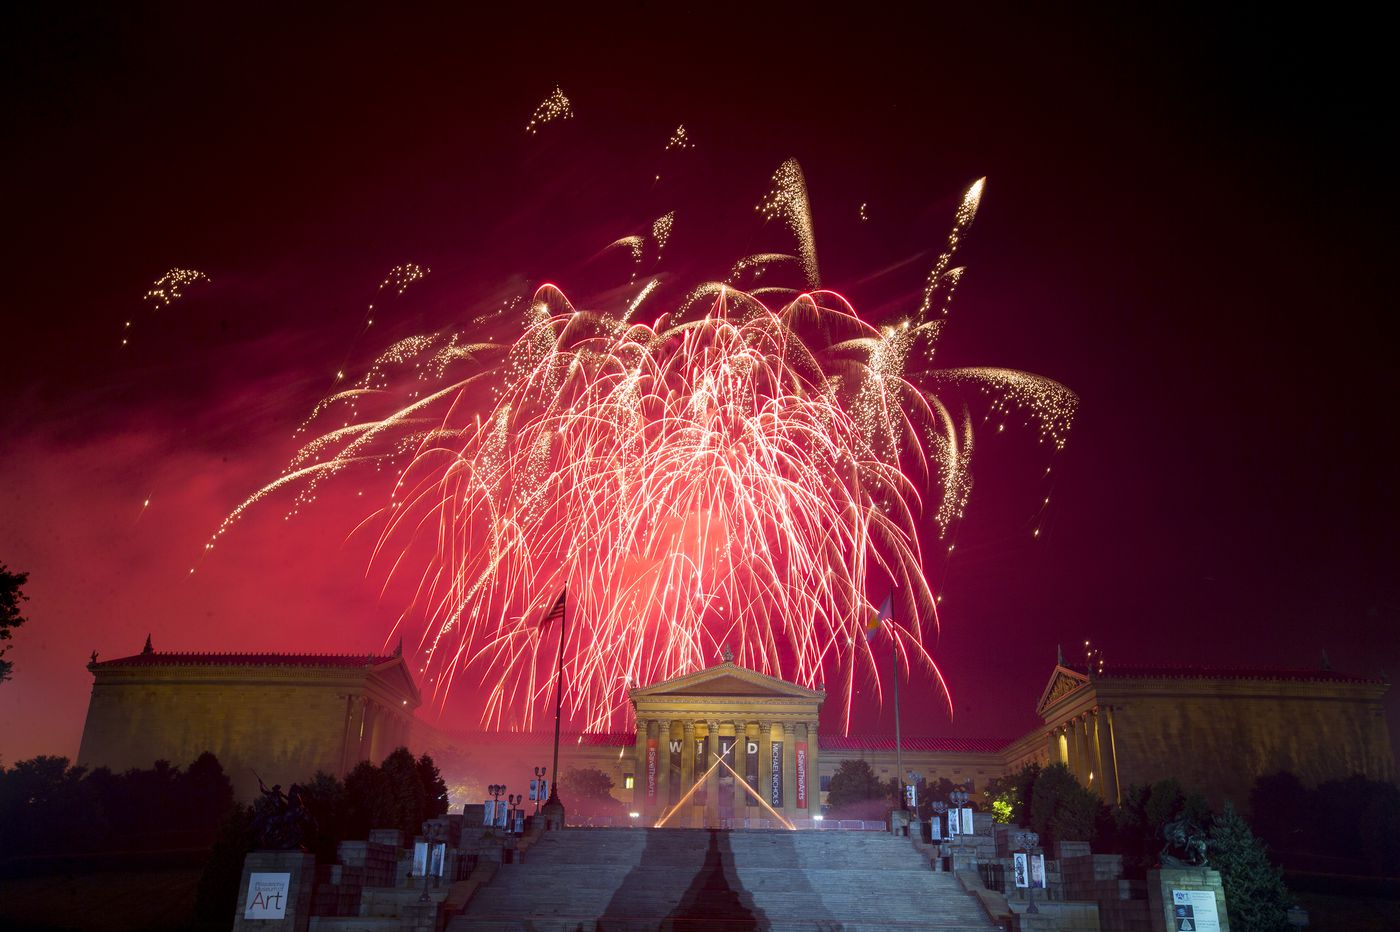 Where do you watch July 4 fireworks in Philly? Share your favorite place to avoid the crowds.